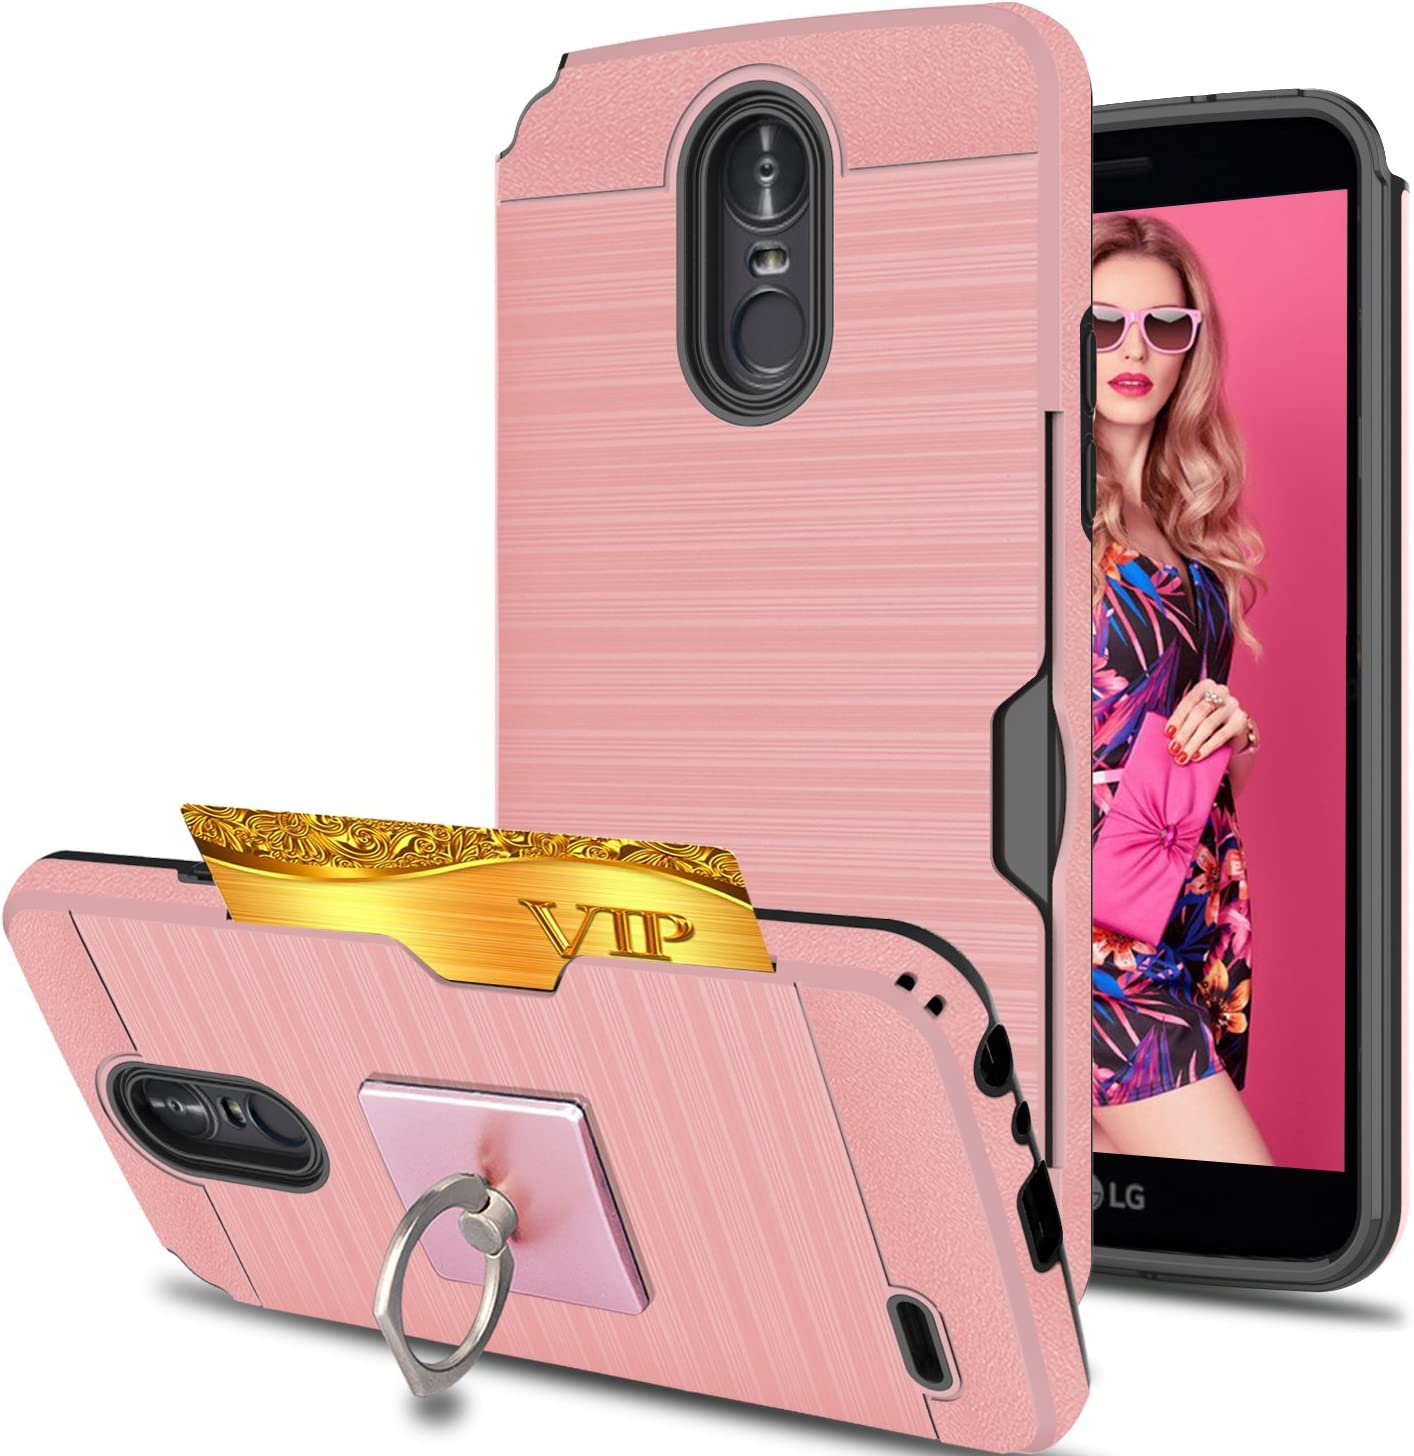 LG Stylo 3 /Stylus 3/Stylo 3 Plus Case with Phone Stand,Ymhxcy [Credit Card Slots Holder][Metal Brushed Texture] Hybrid Dual Layer Full-Body Shockproof Protective Cover Shell LG LS777-LCK Rose Gold